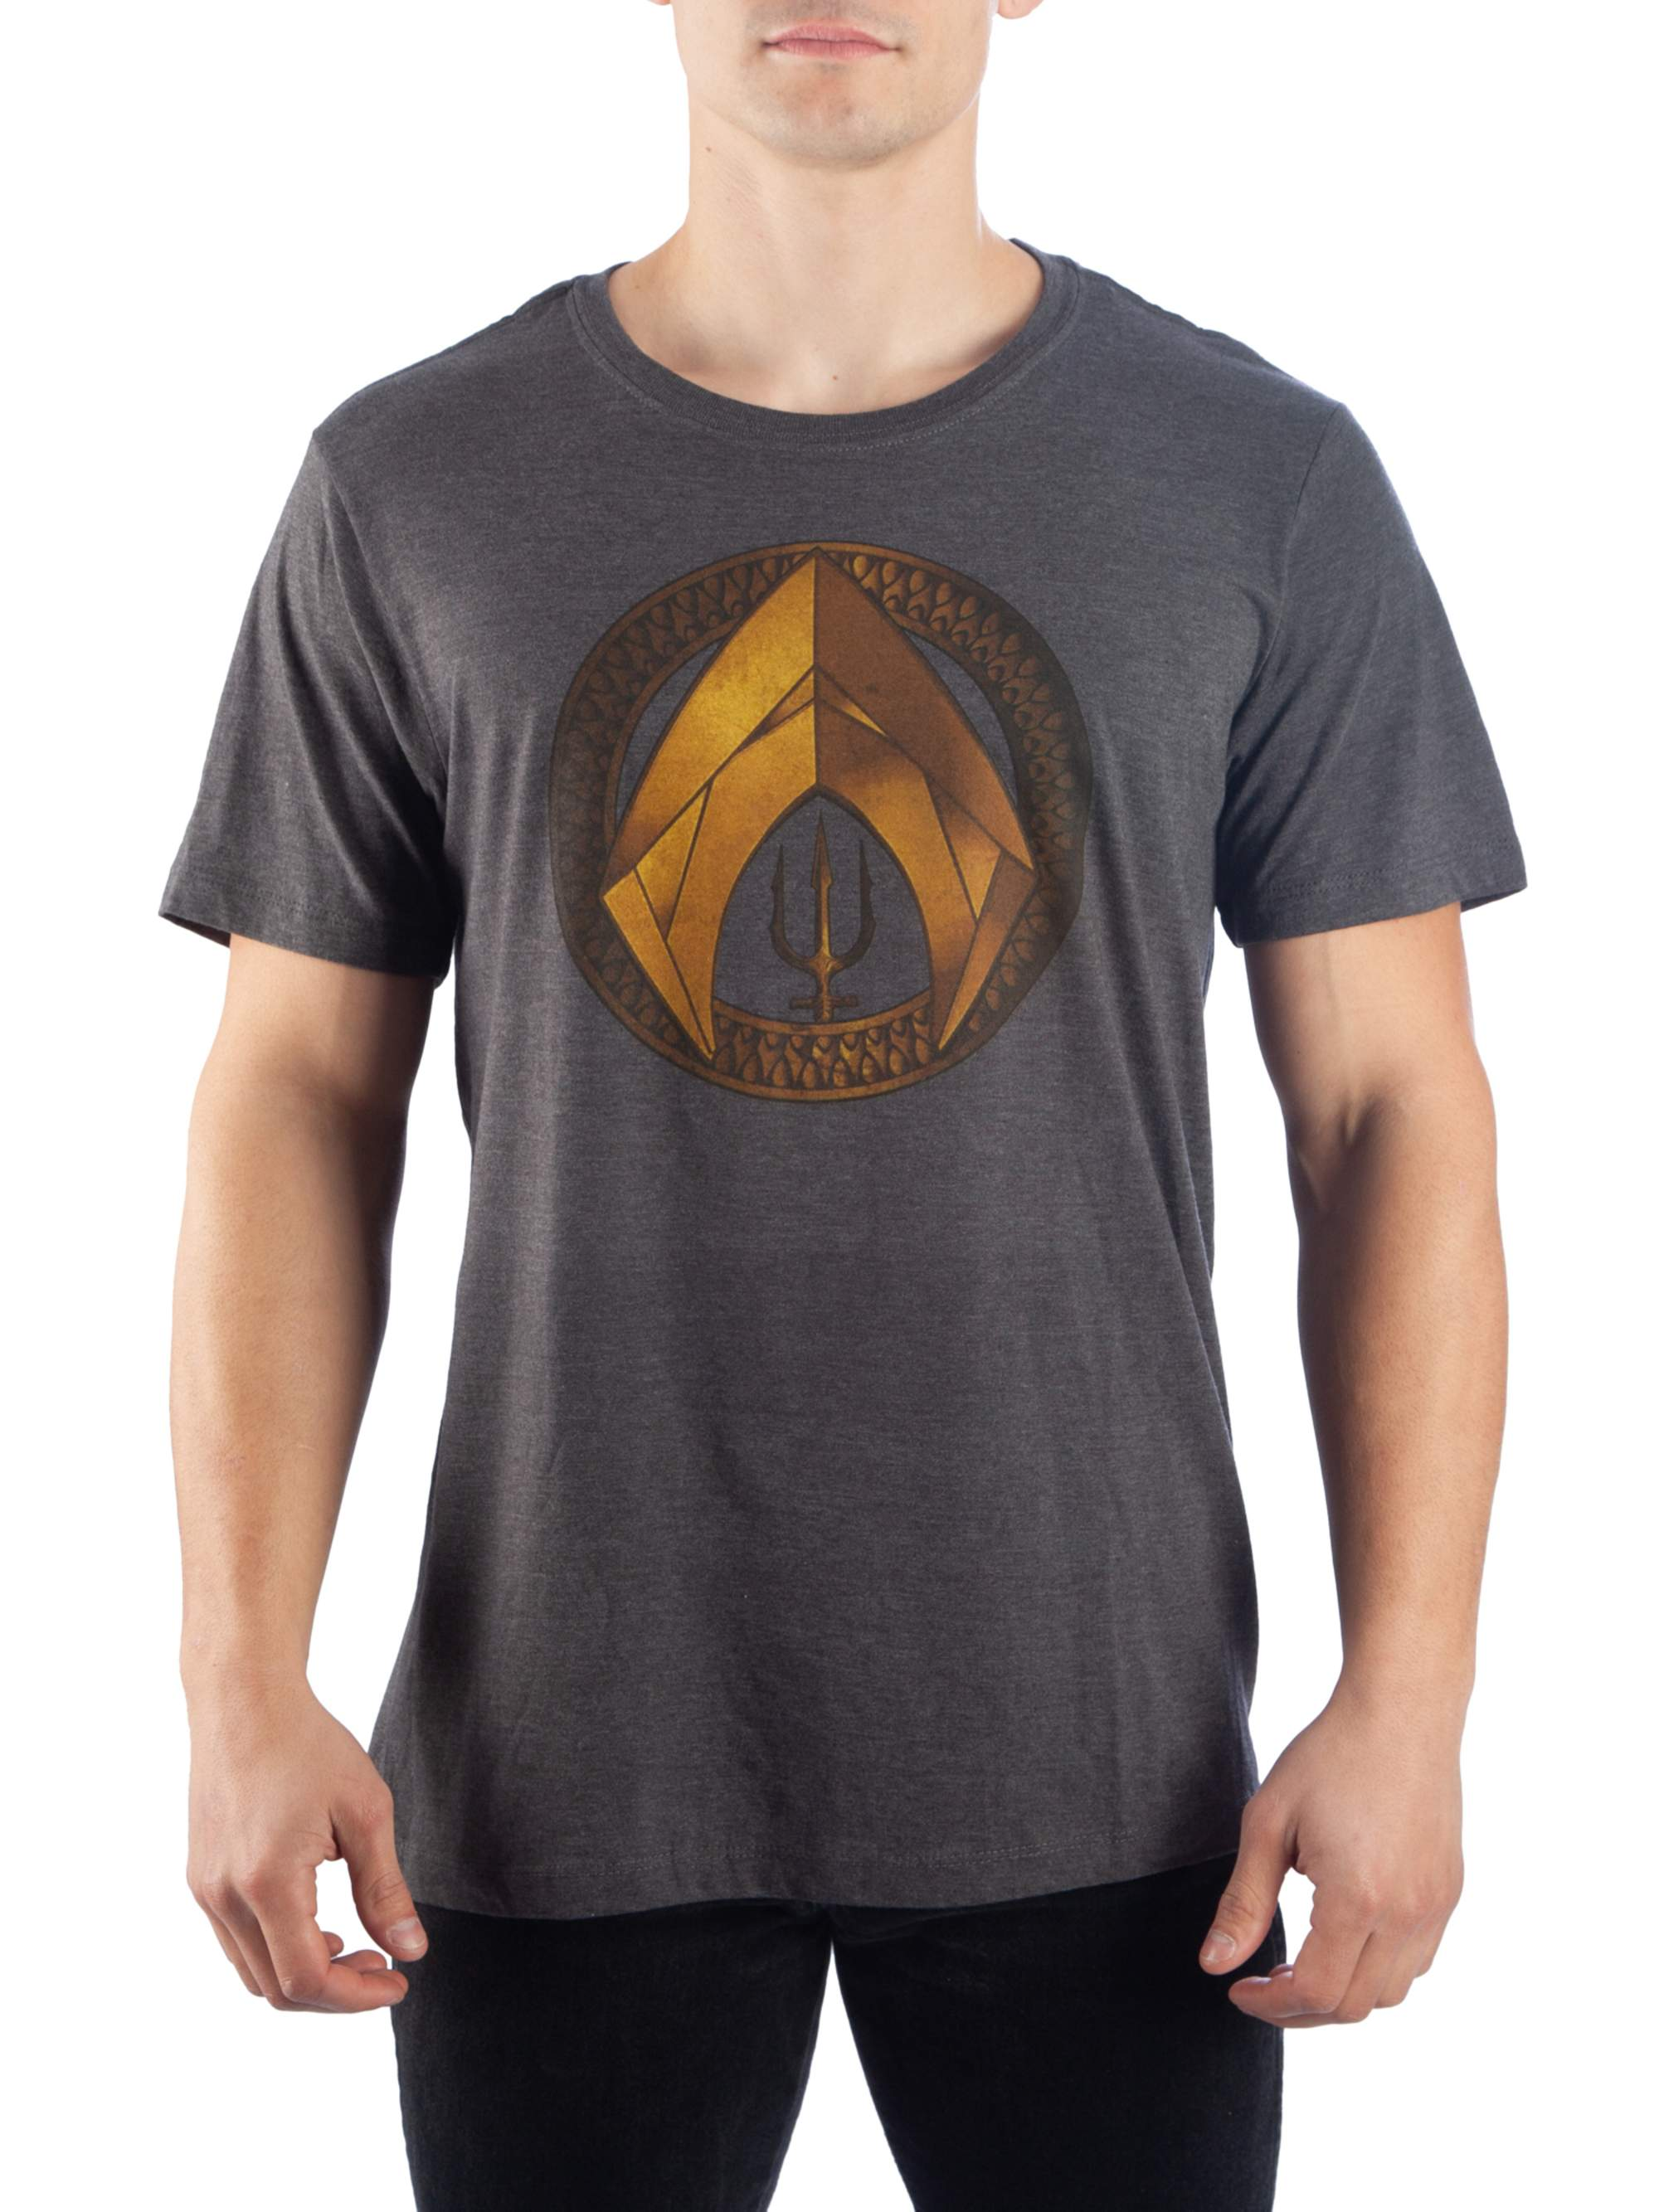 Aquaman Men's Shield And Trident Short Sleeve Graphic T-Shirt, Up To Size 2XL